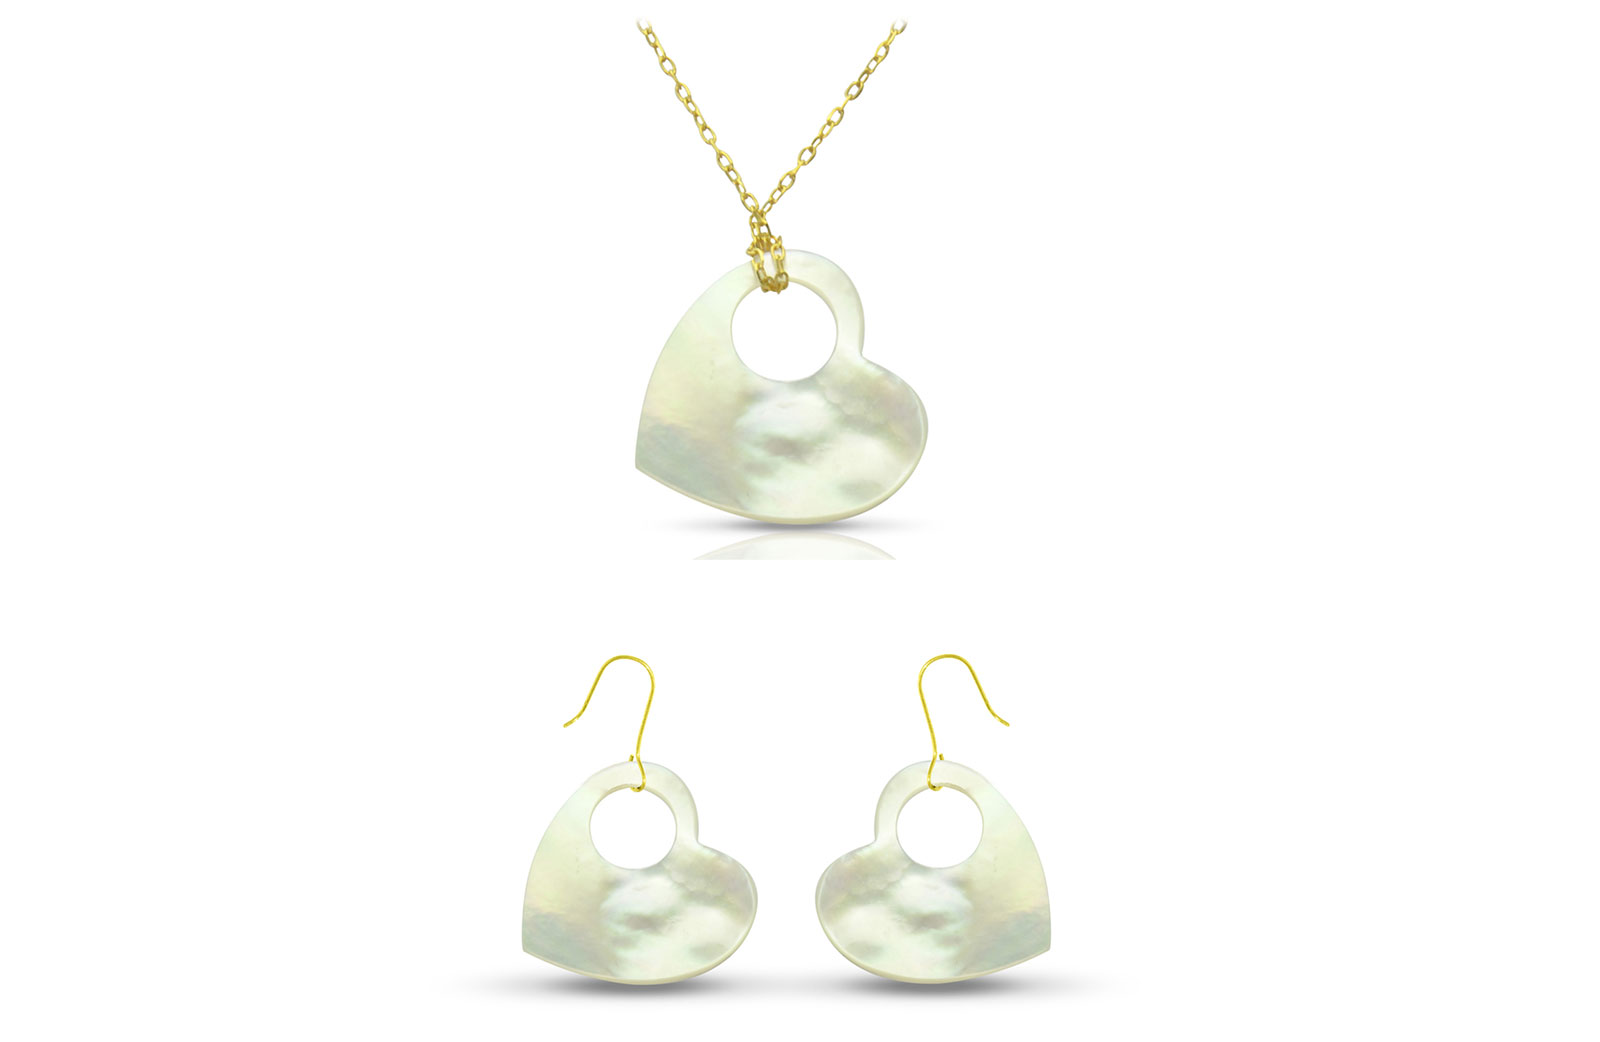 Vera Perla 18K Gold Heart with Hole Mother of Pearl Jewelry Set, 2 pcs